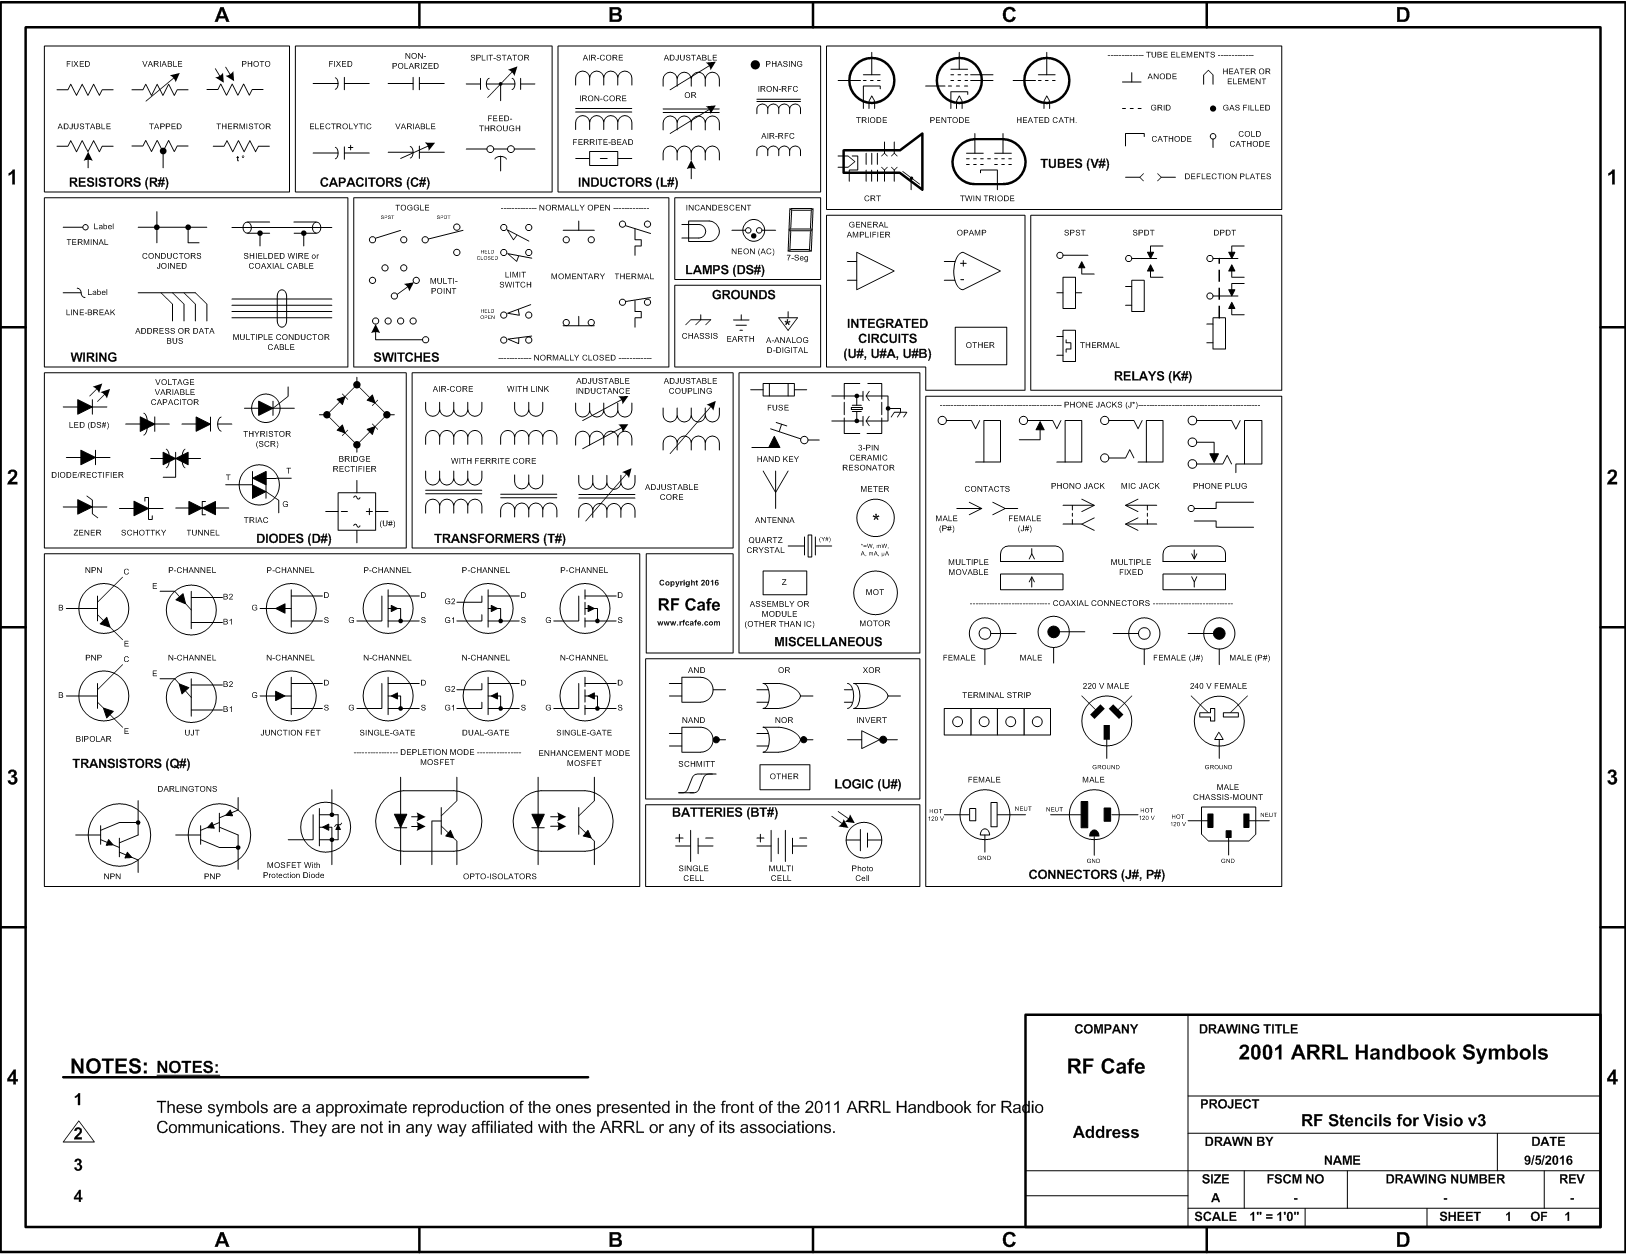 rf microwave wireless analog block diagrams stencils shapes for    visio circuit schematic symbols from the arrl handbook   rf cafe